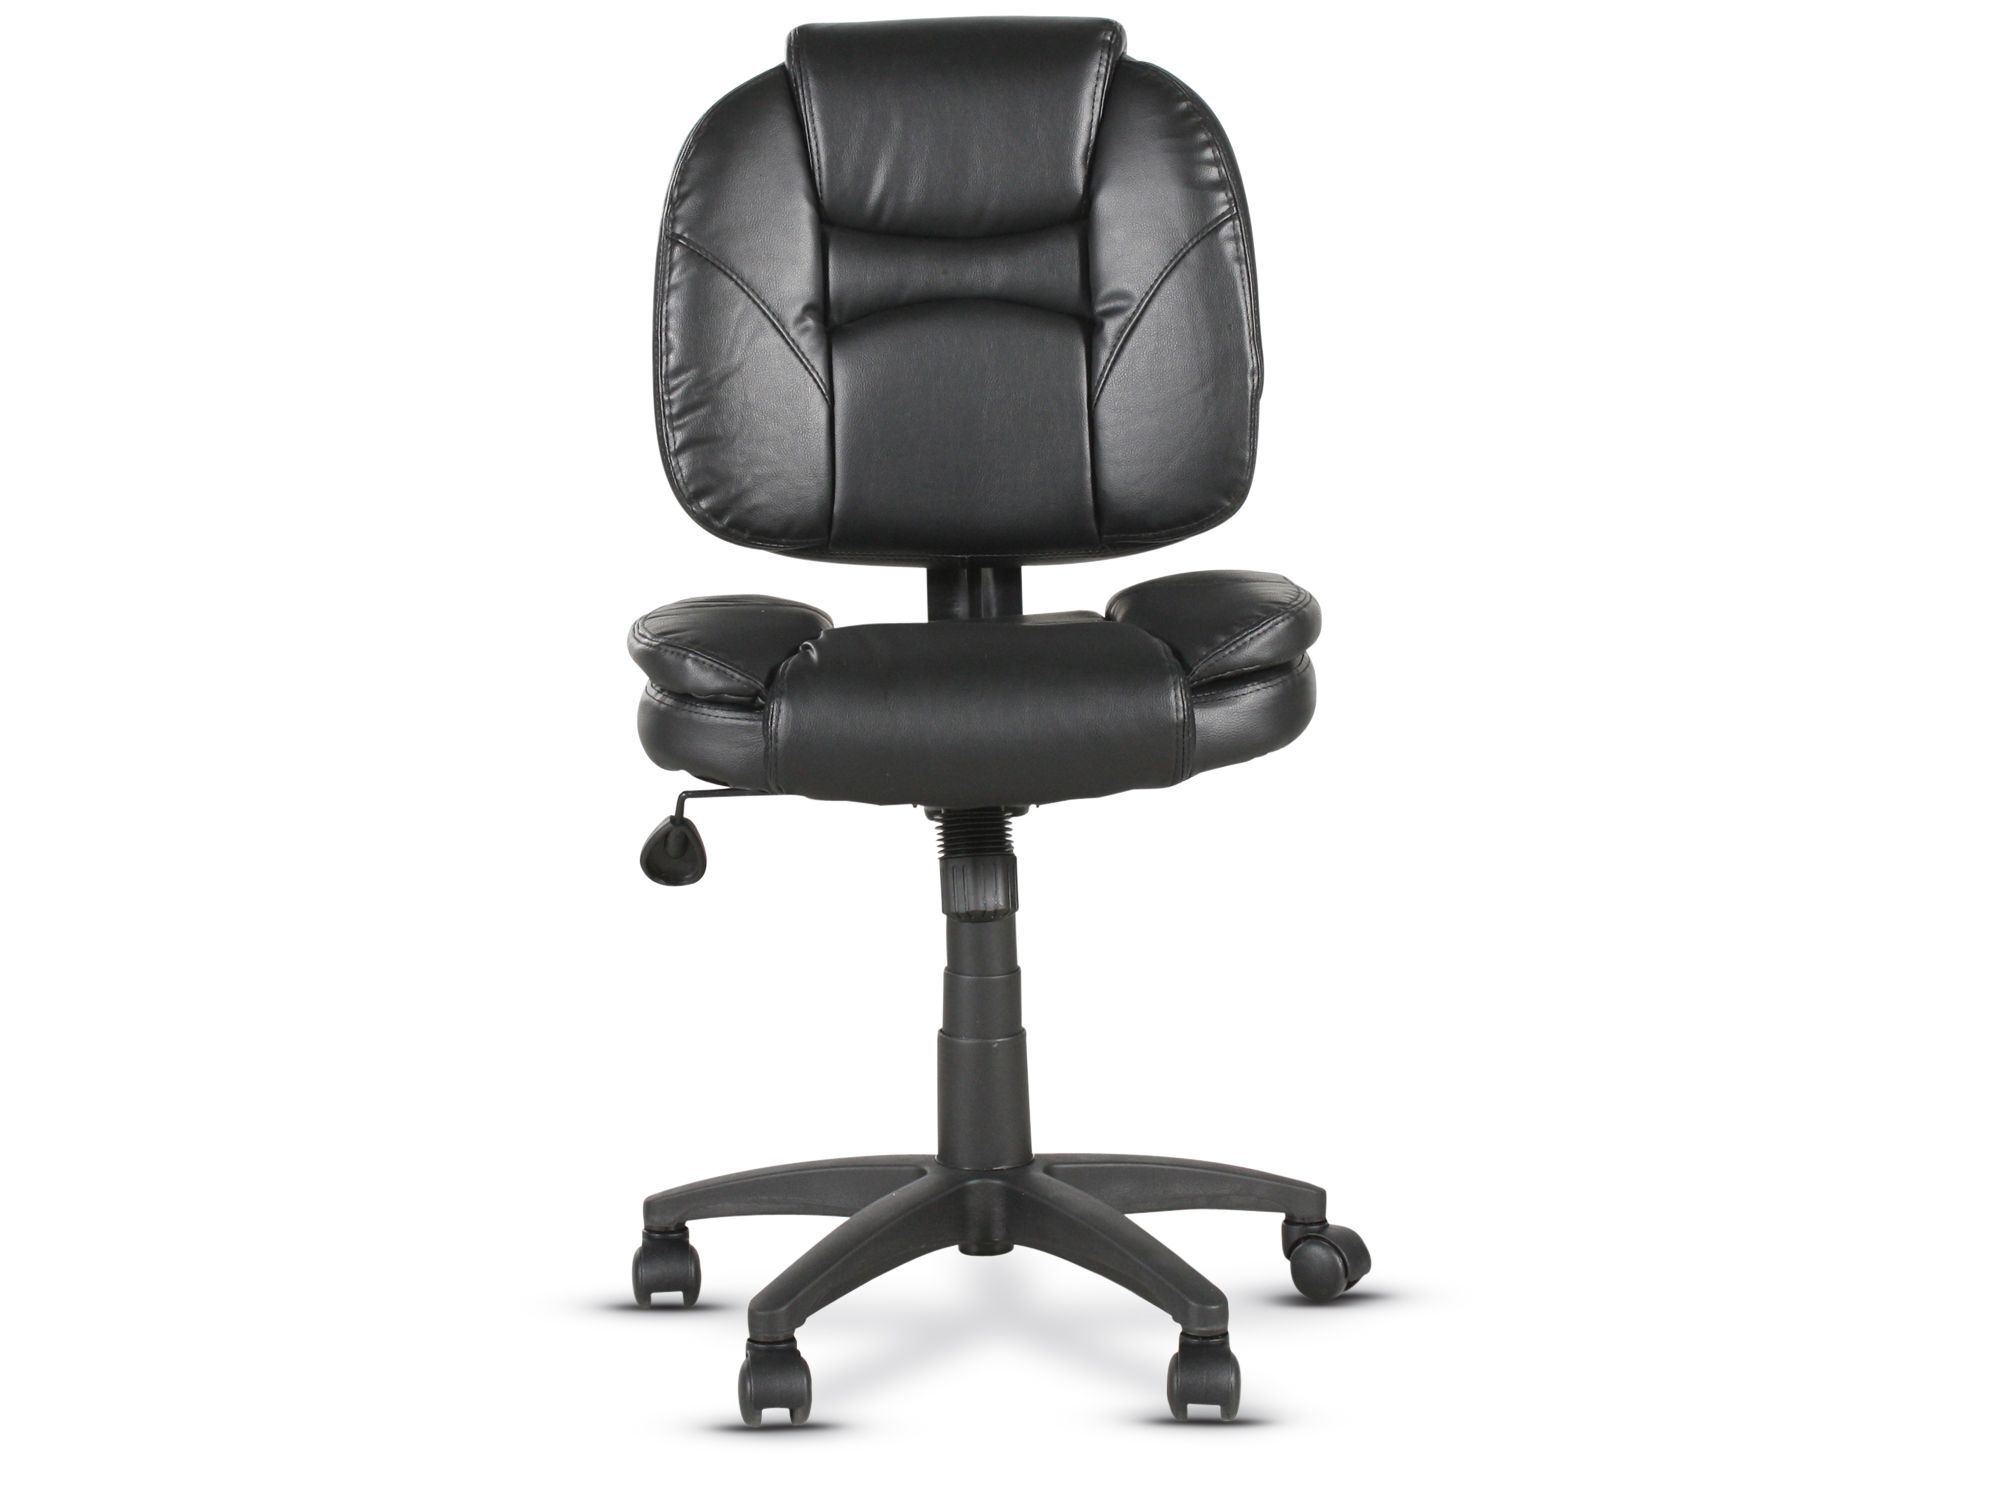 Casters Tilt Lock Task Chair in Black  Mathis Brothers